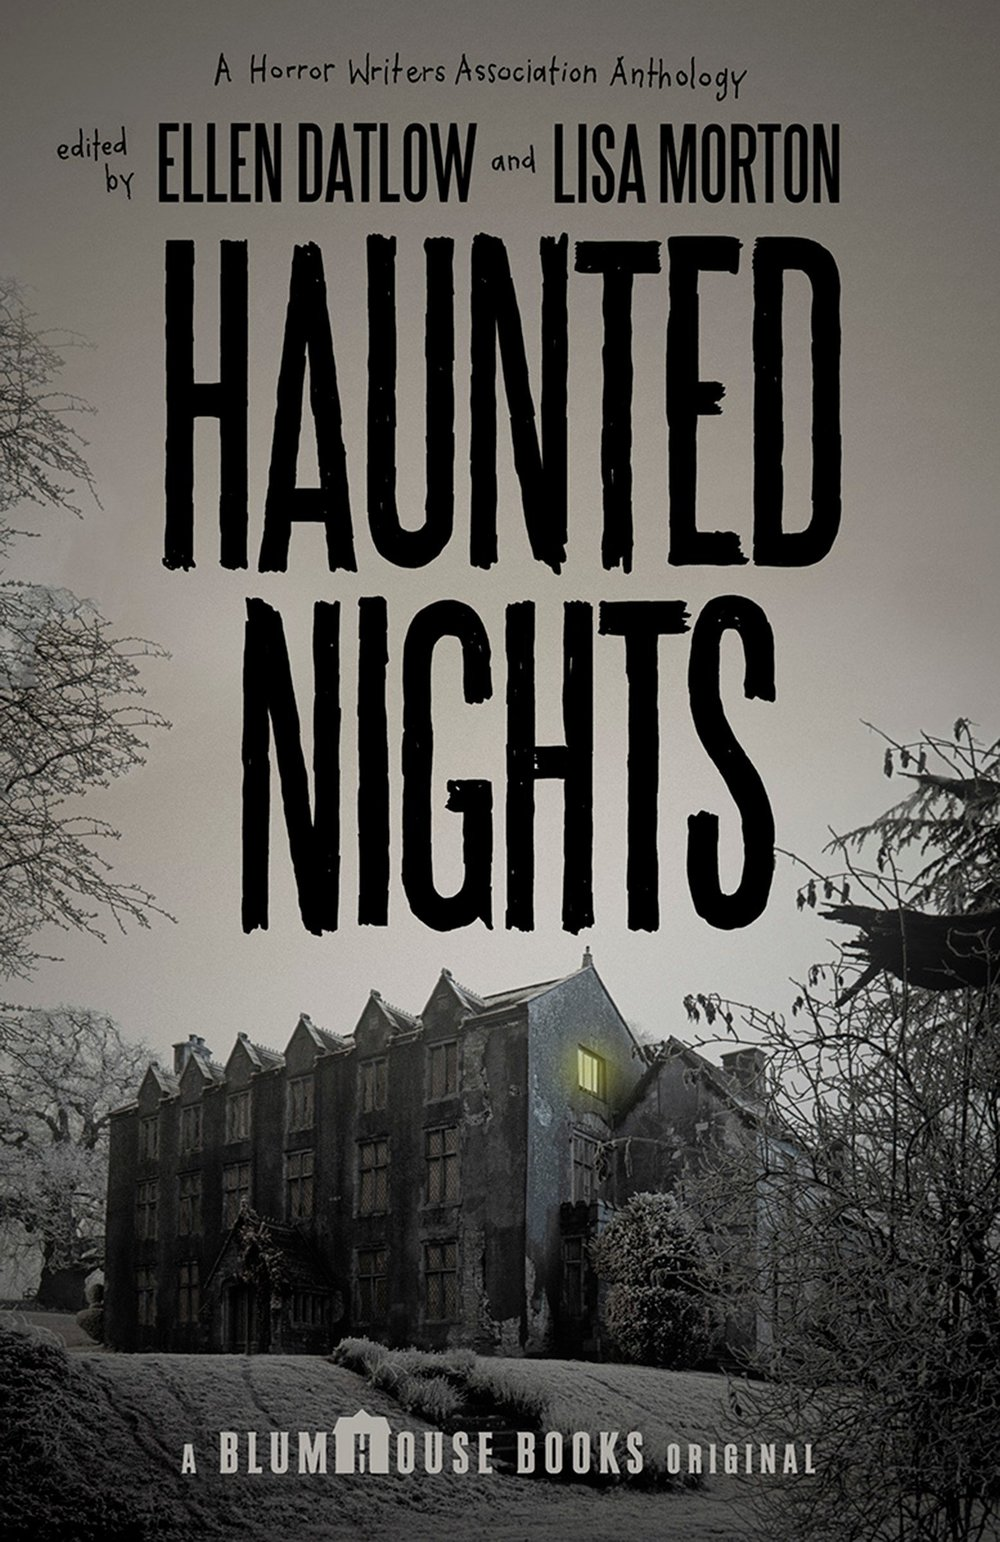 Haunted Nights_Ellen Datlow_Lisa Morton.jpg